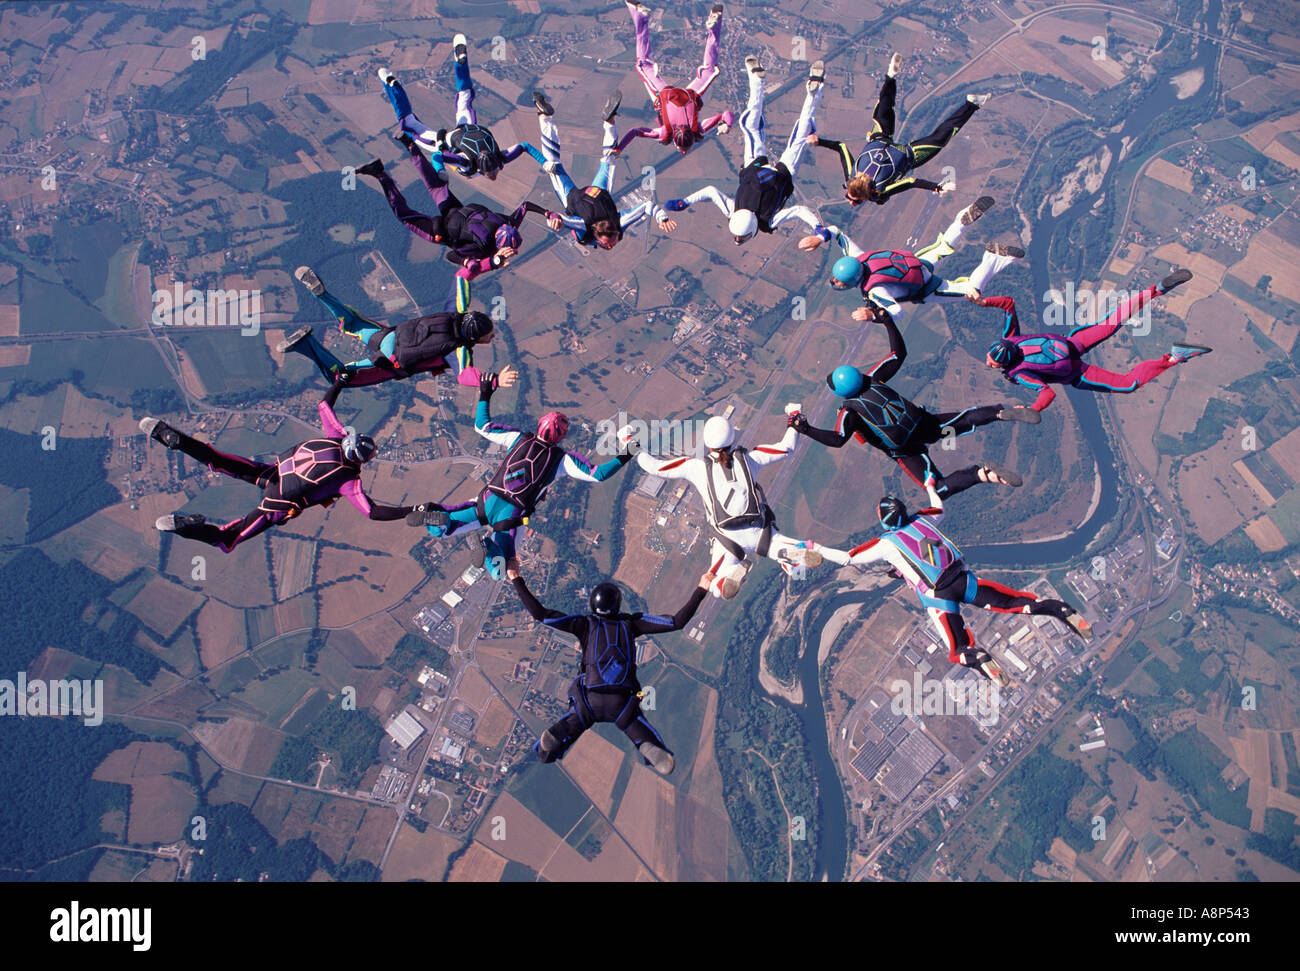 Freefall formation above Vichy France - Stock Image